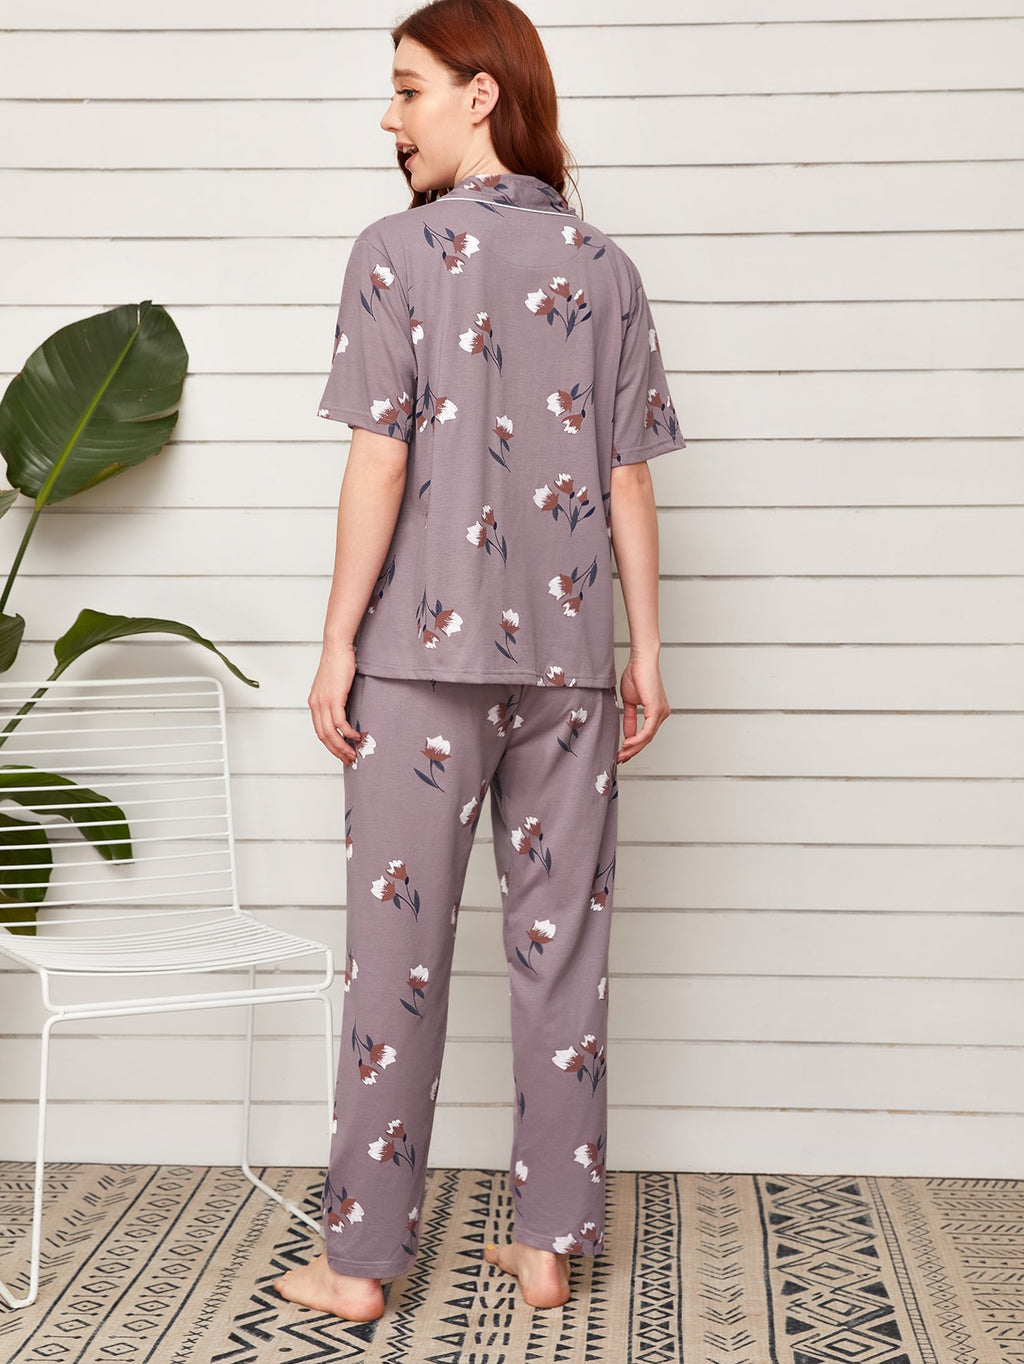 Floral Print Lapel Neck Pajama Set